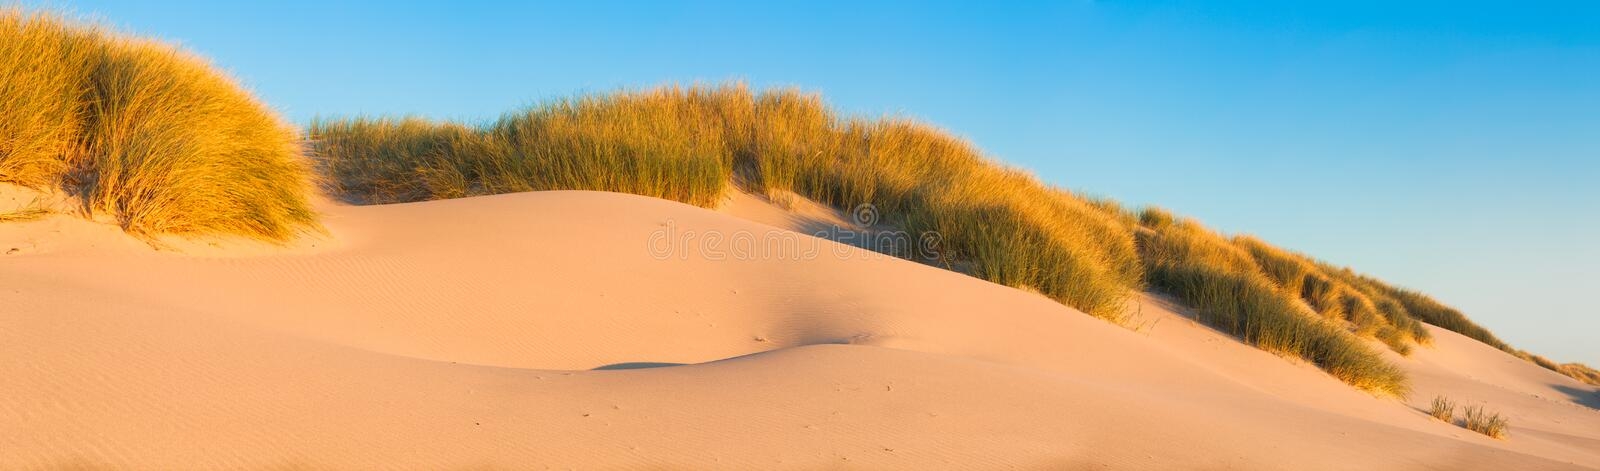 Sand dunes and grasses on a beach - panorama stock photos